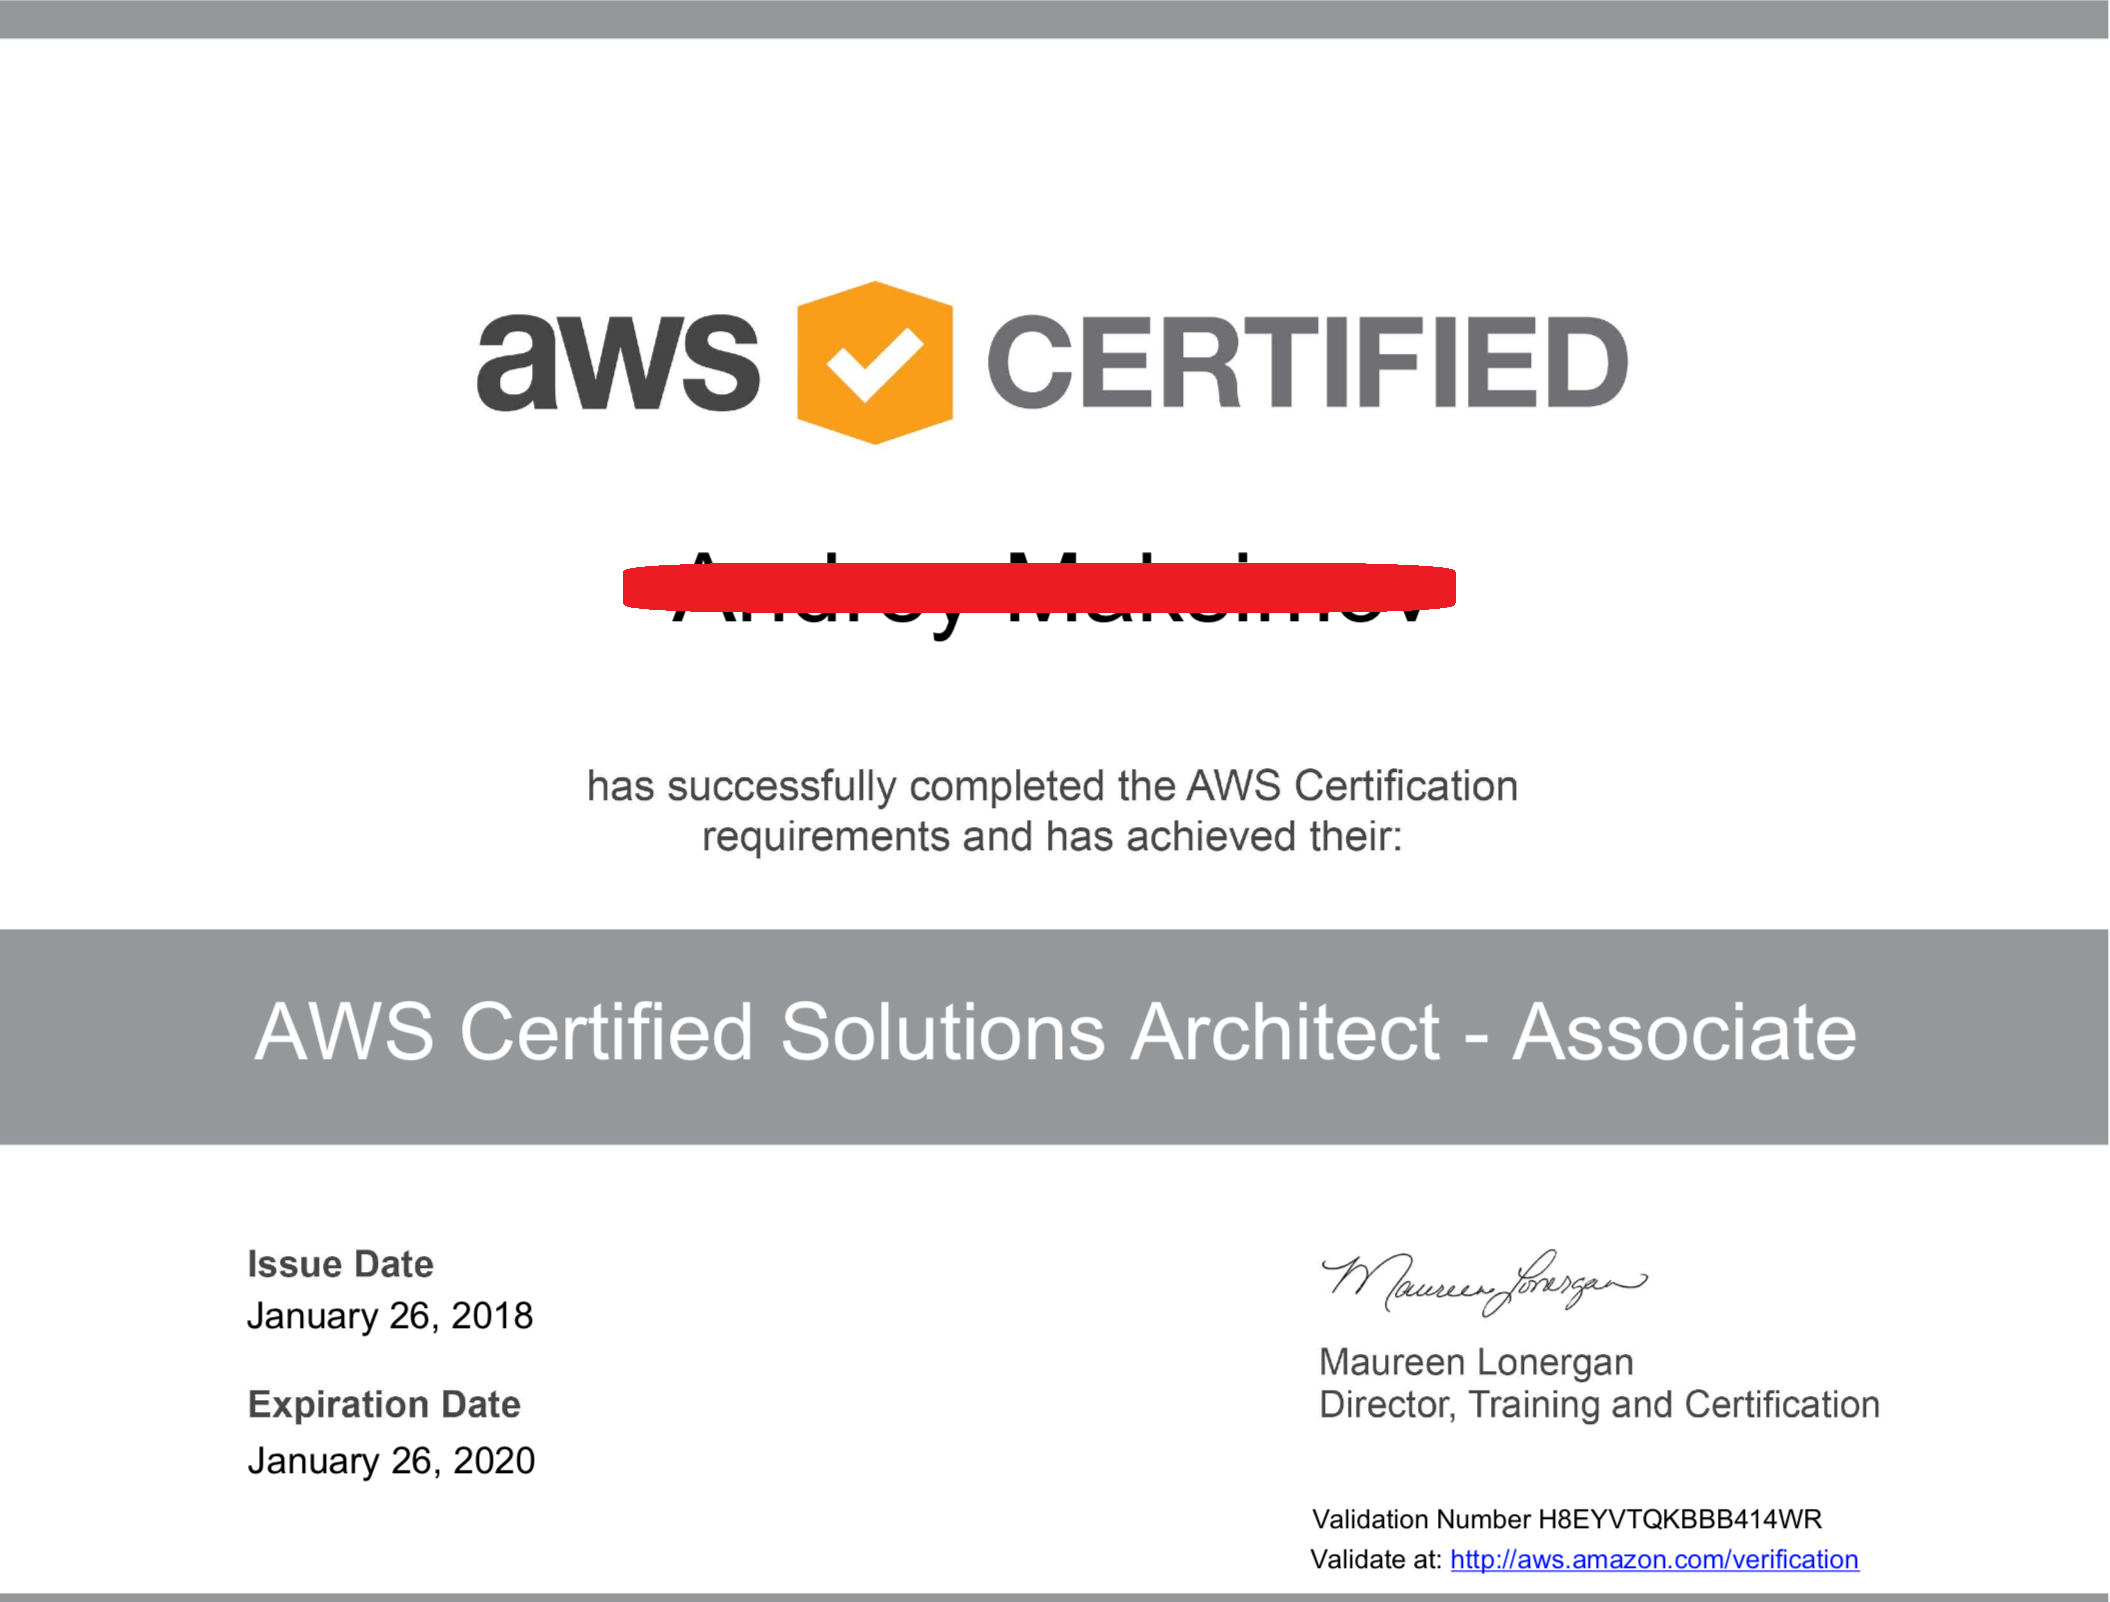 How Long Does It Take Aws To Provide You The Certificate After You